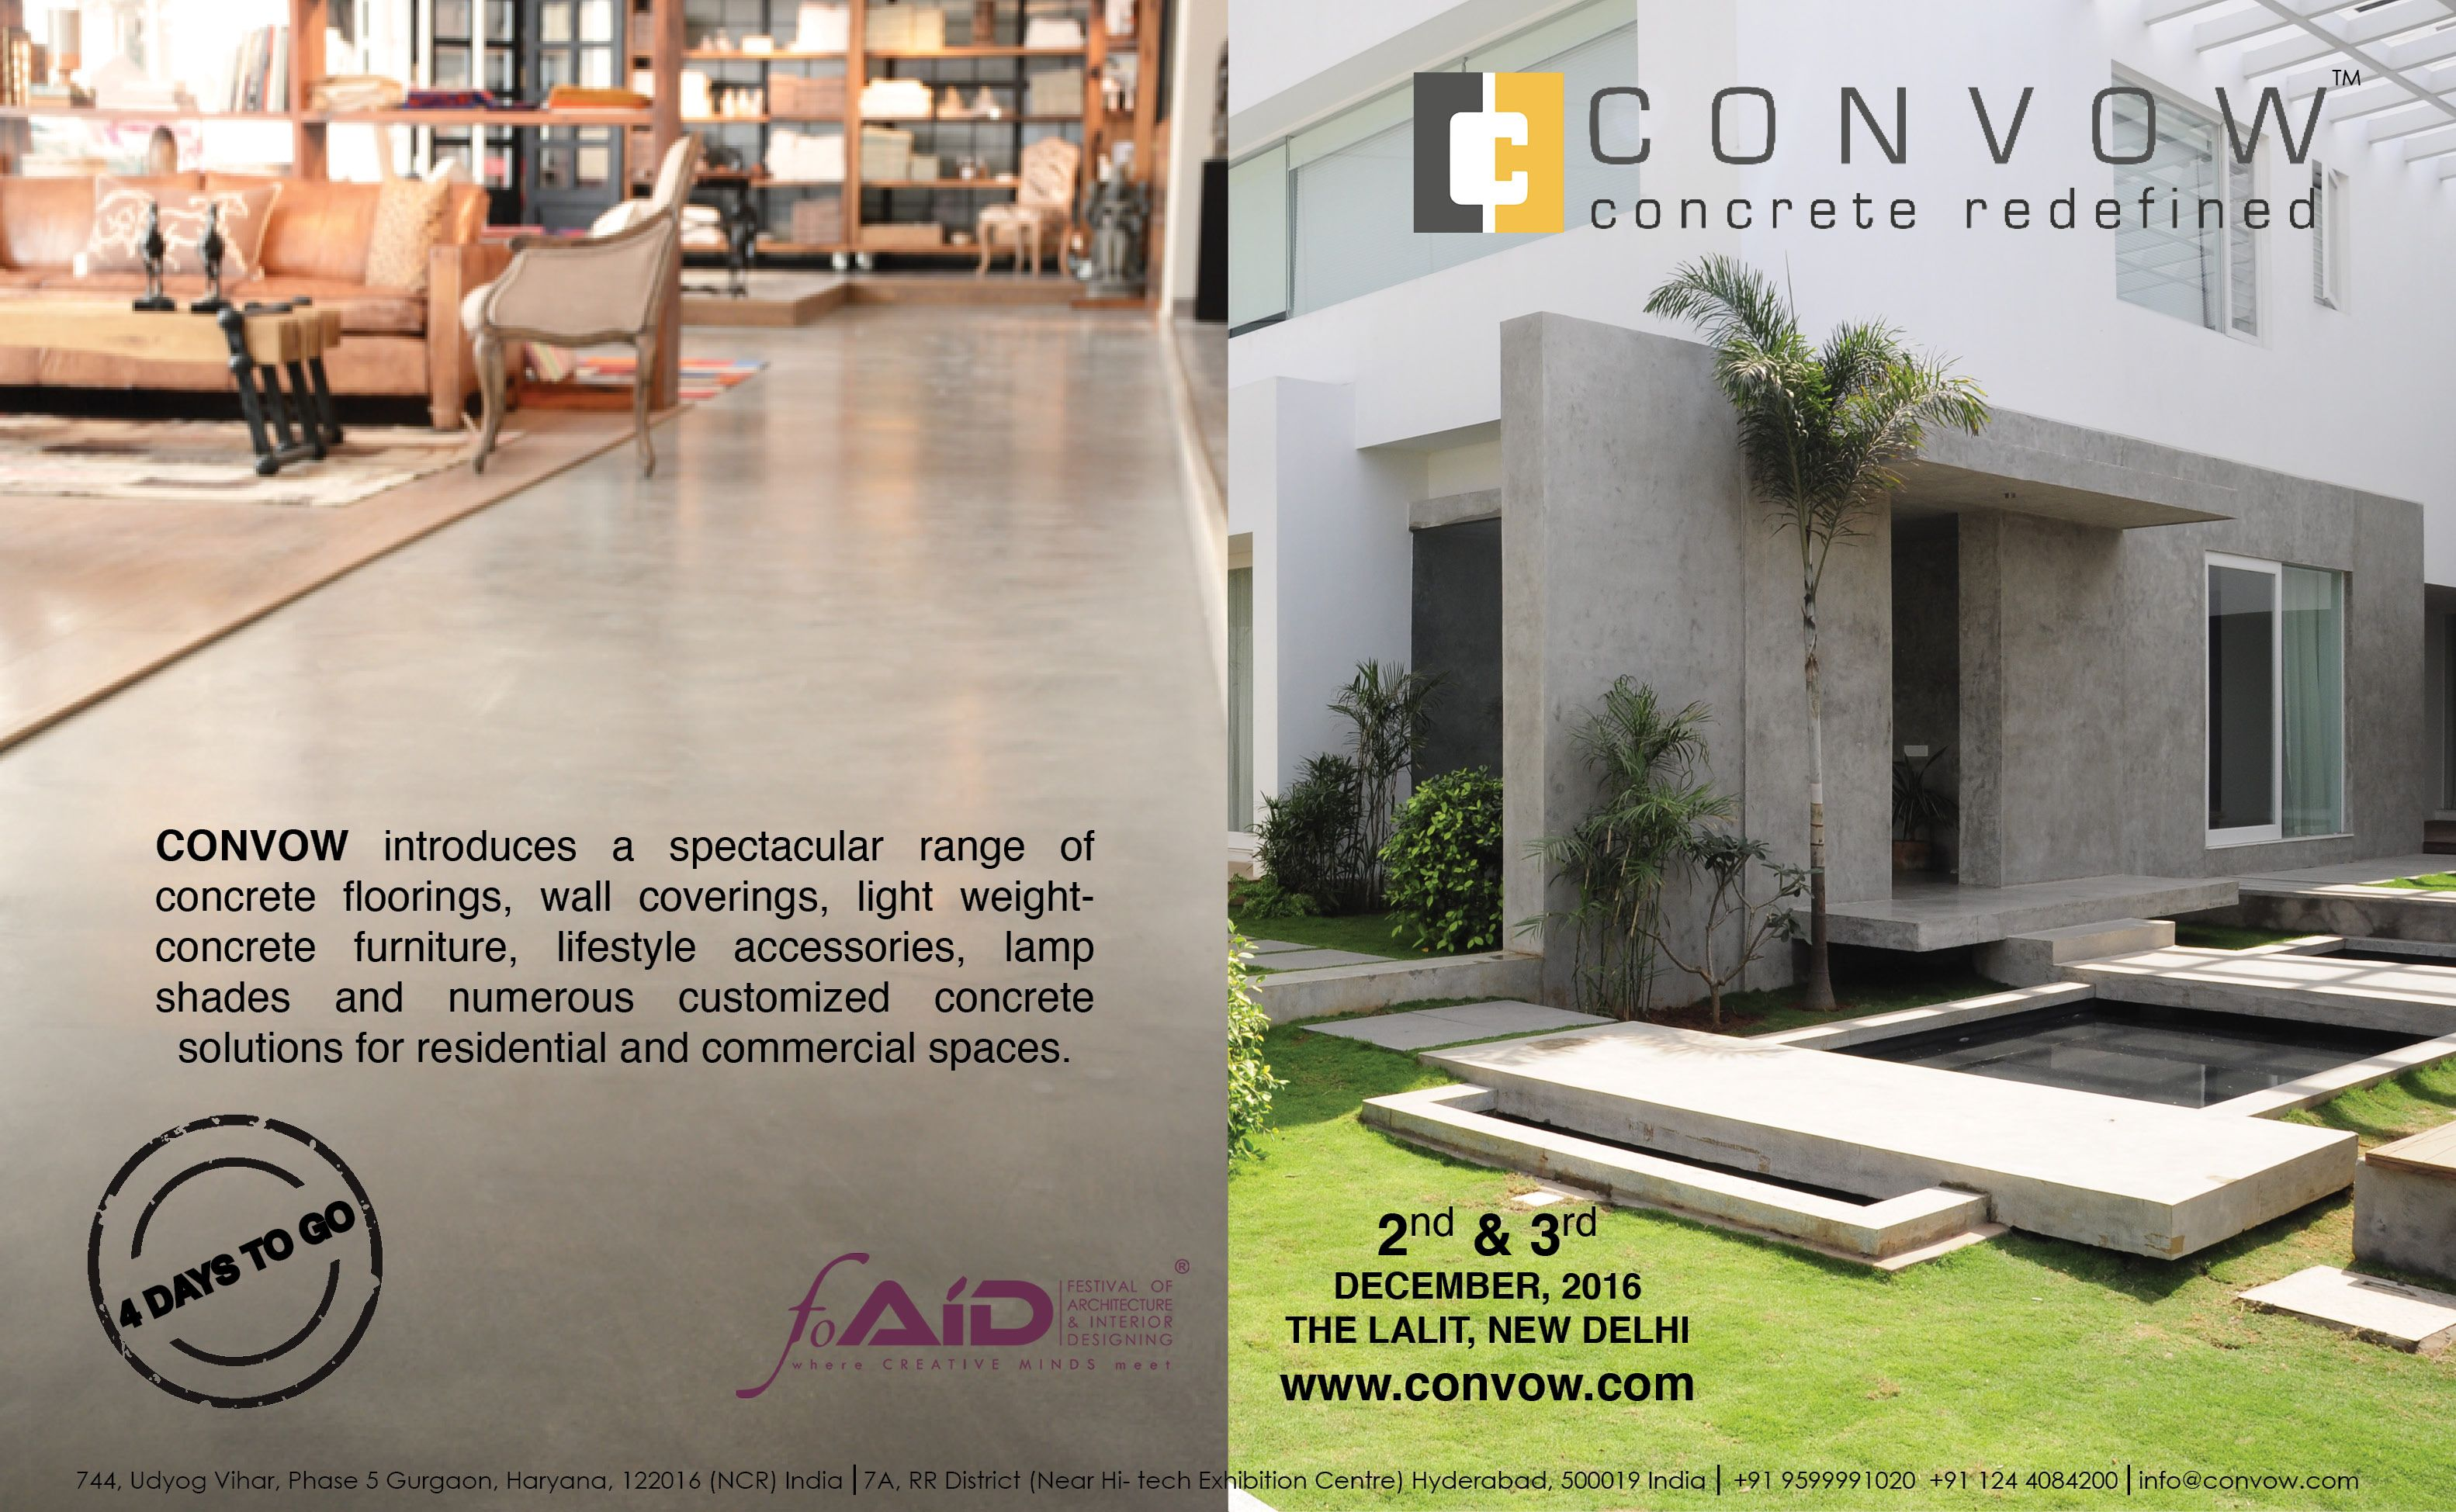 4 days to go!! CONVOW exhibits in FOAID Delhi, Gather yourselves and show up at the festival of architecture and interior designing 2016!!